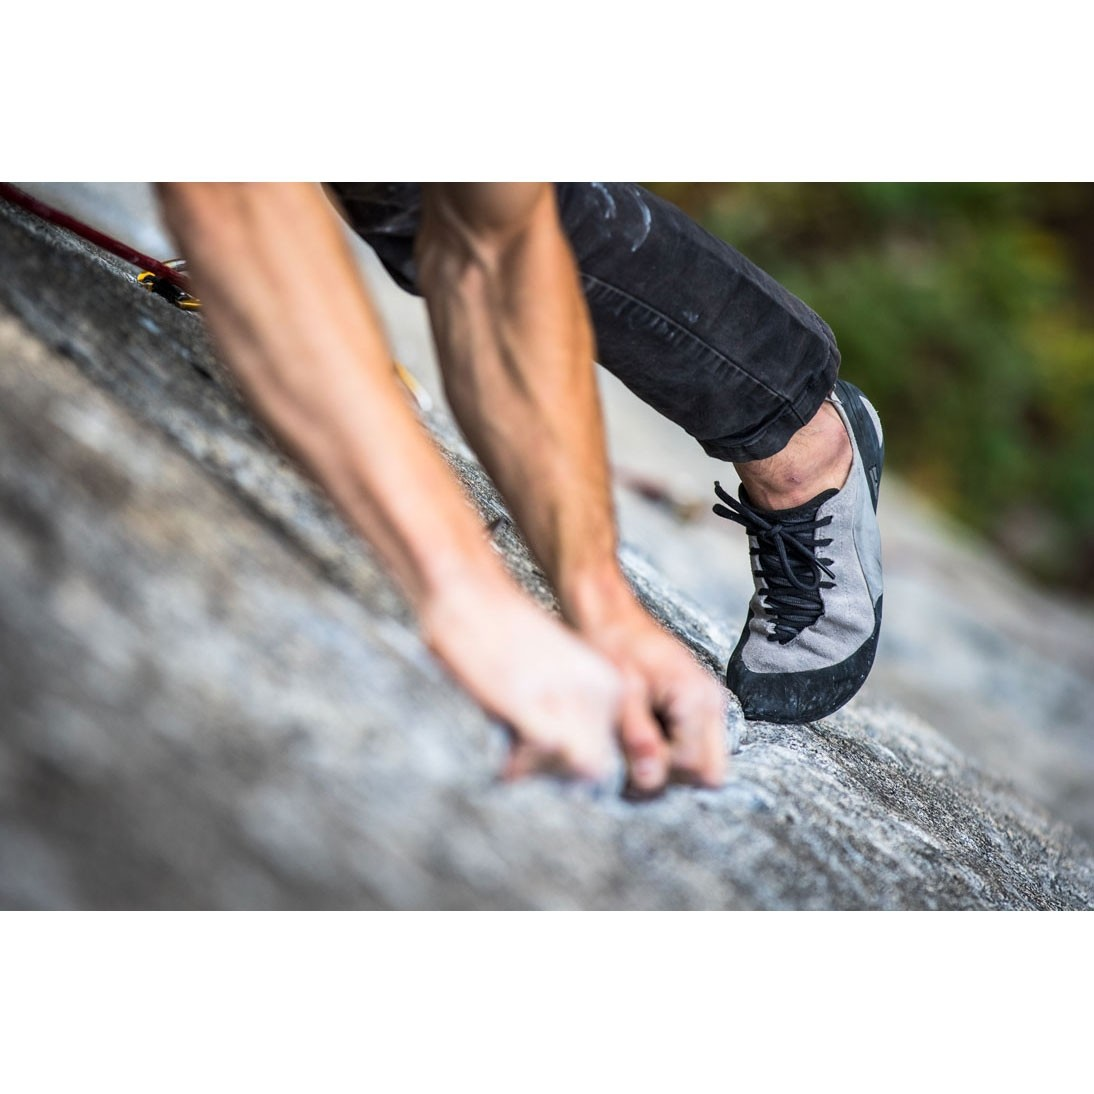 BLACK DIAMOND - Aspect Climbing Shoes - Aluminium